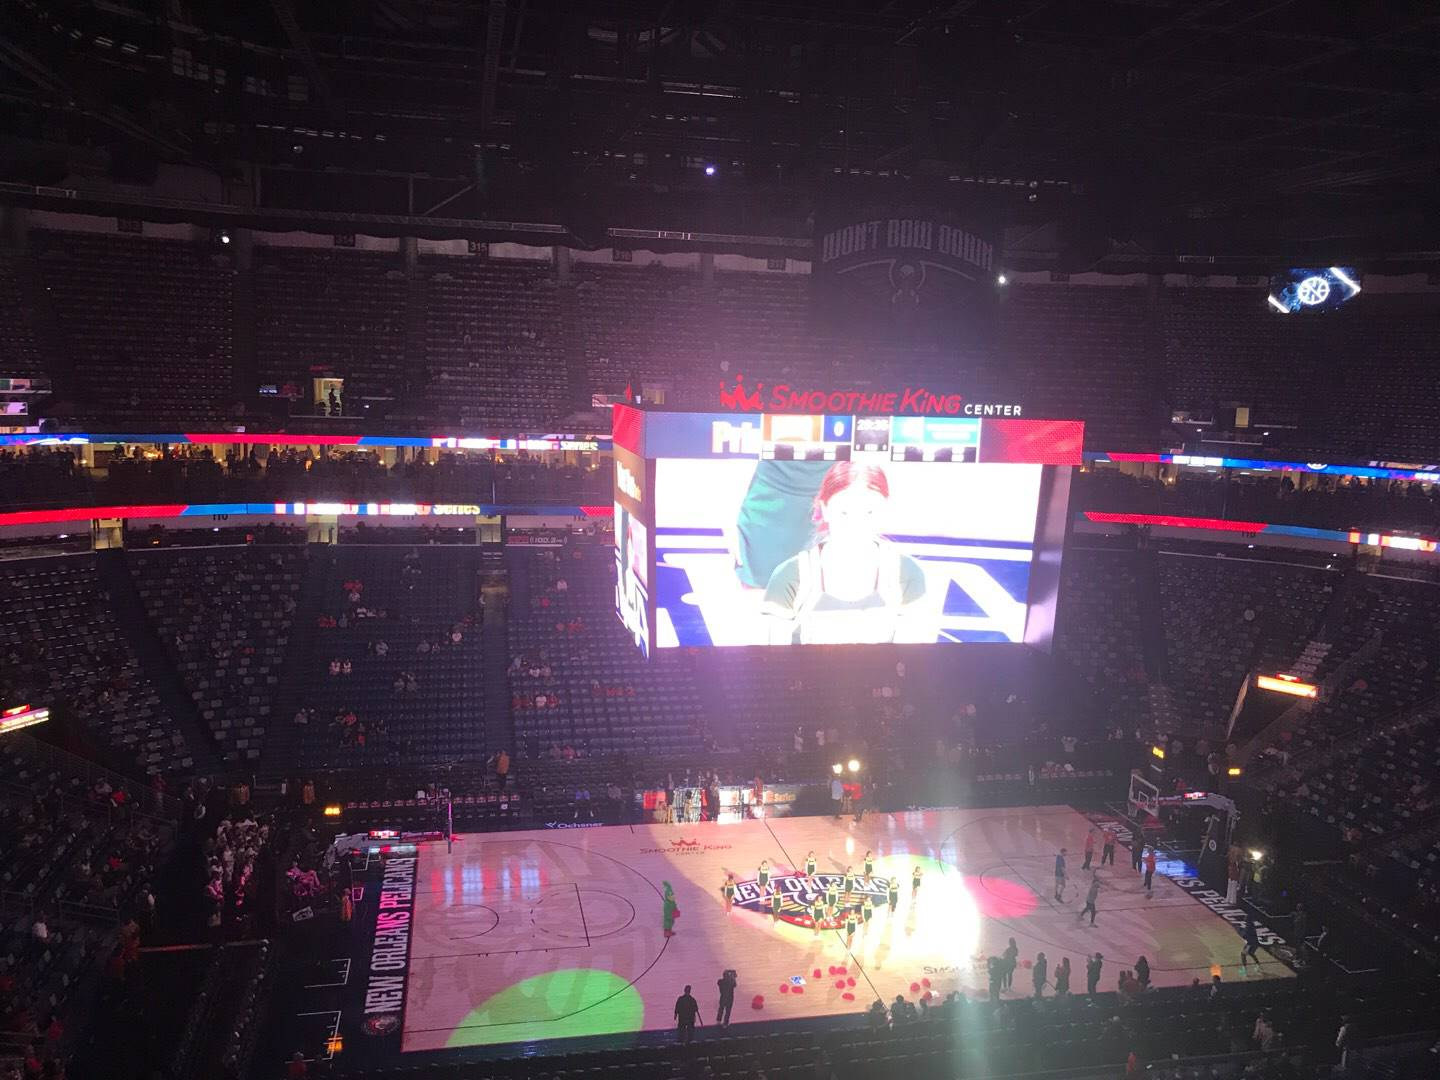 Smoothie King Center Section 301 Row 7 Seat 15